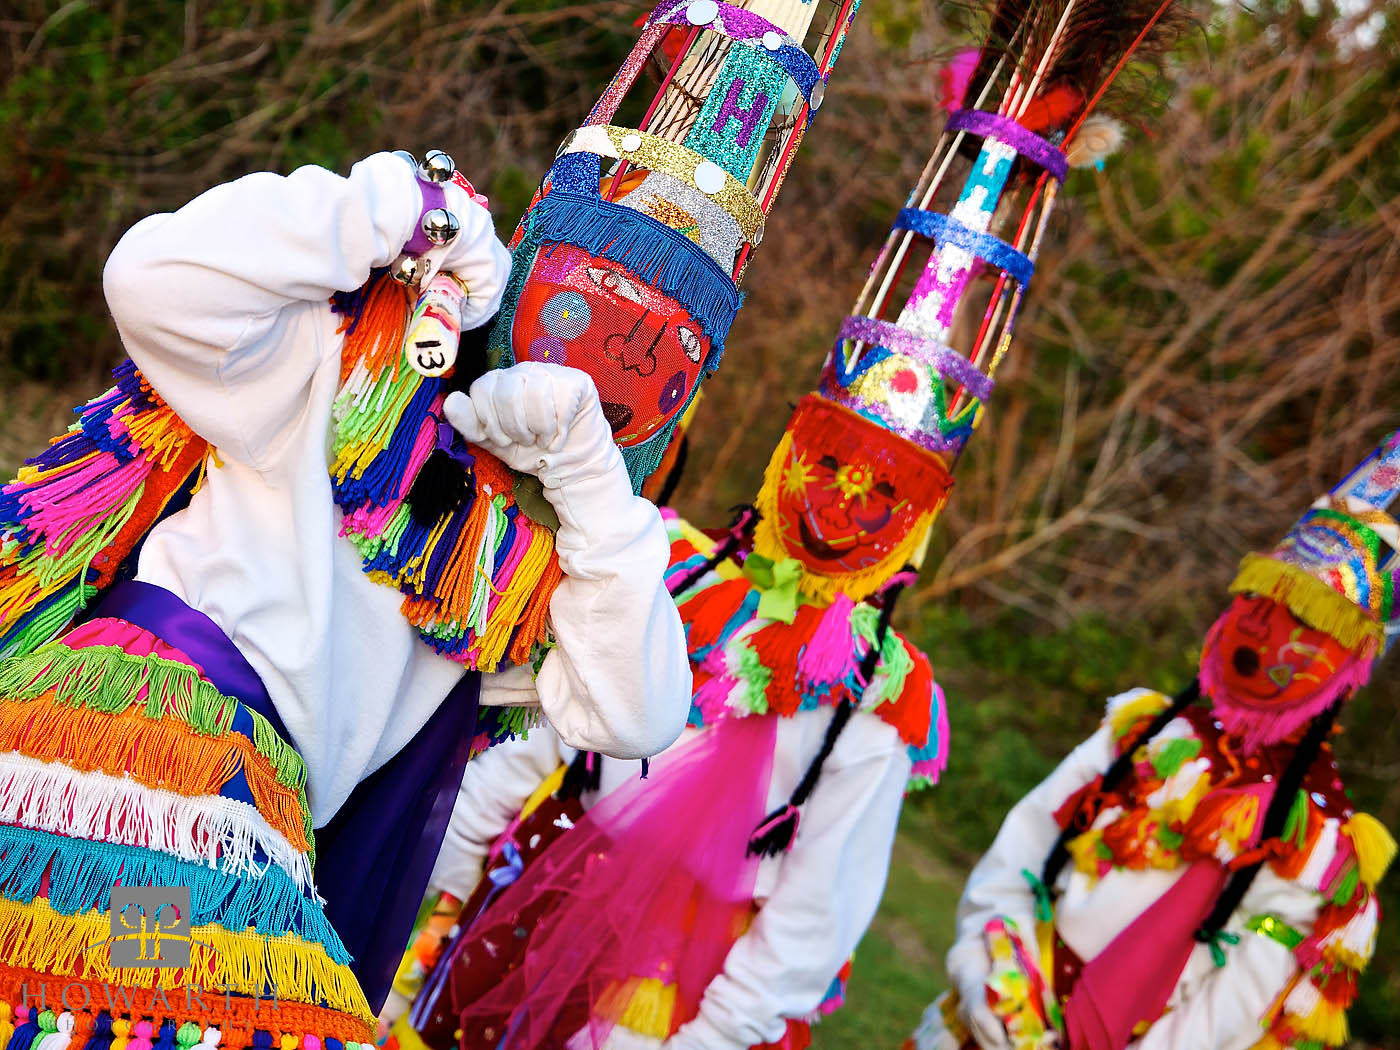 Gombey, Dancers, Costume, Mask, colours, photo